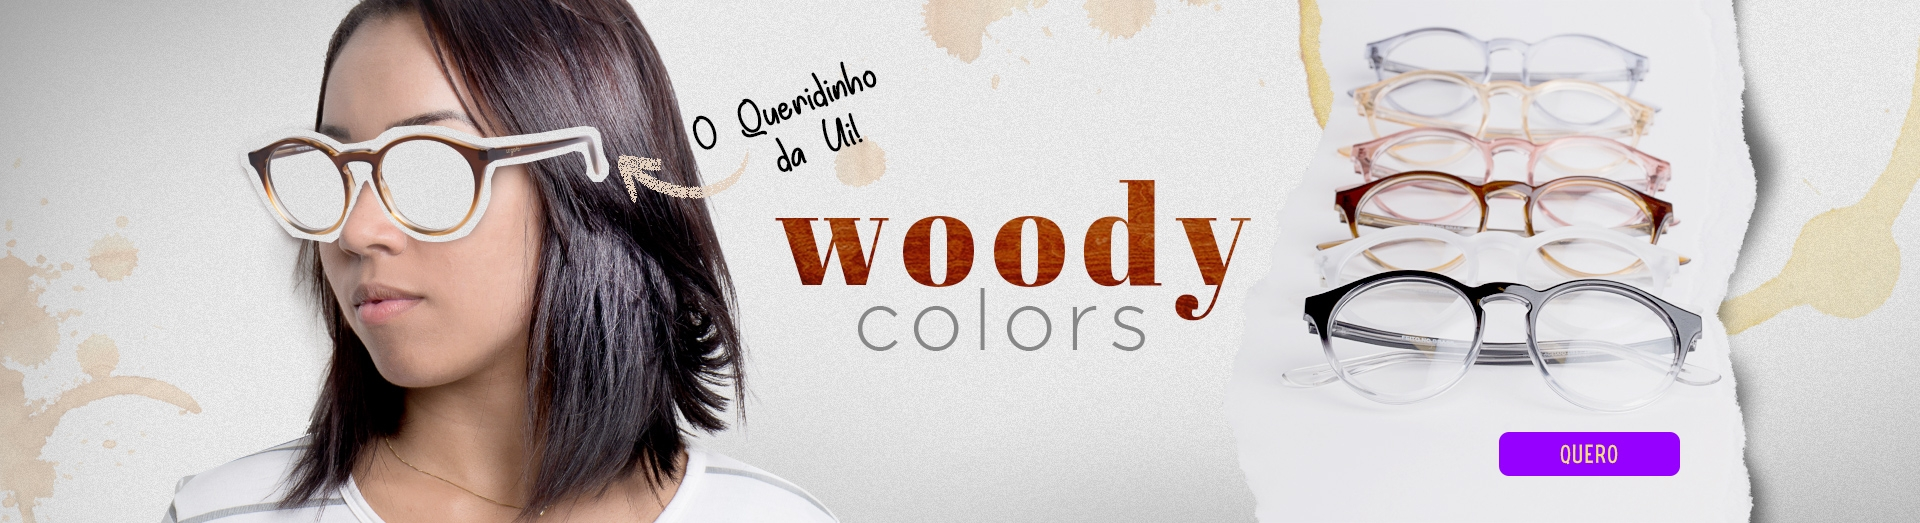 woody color